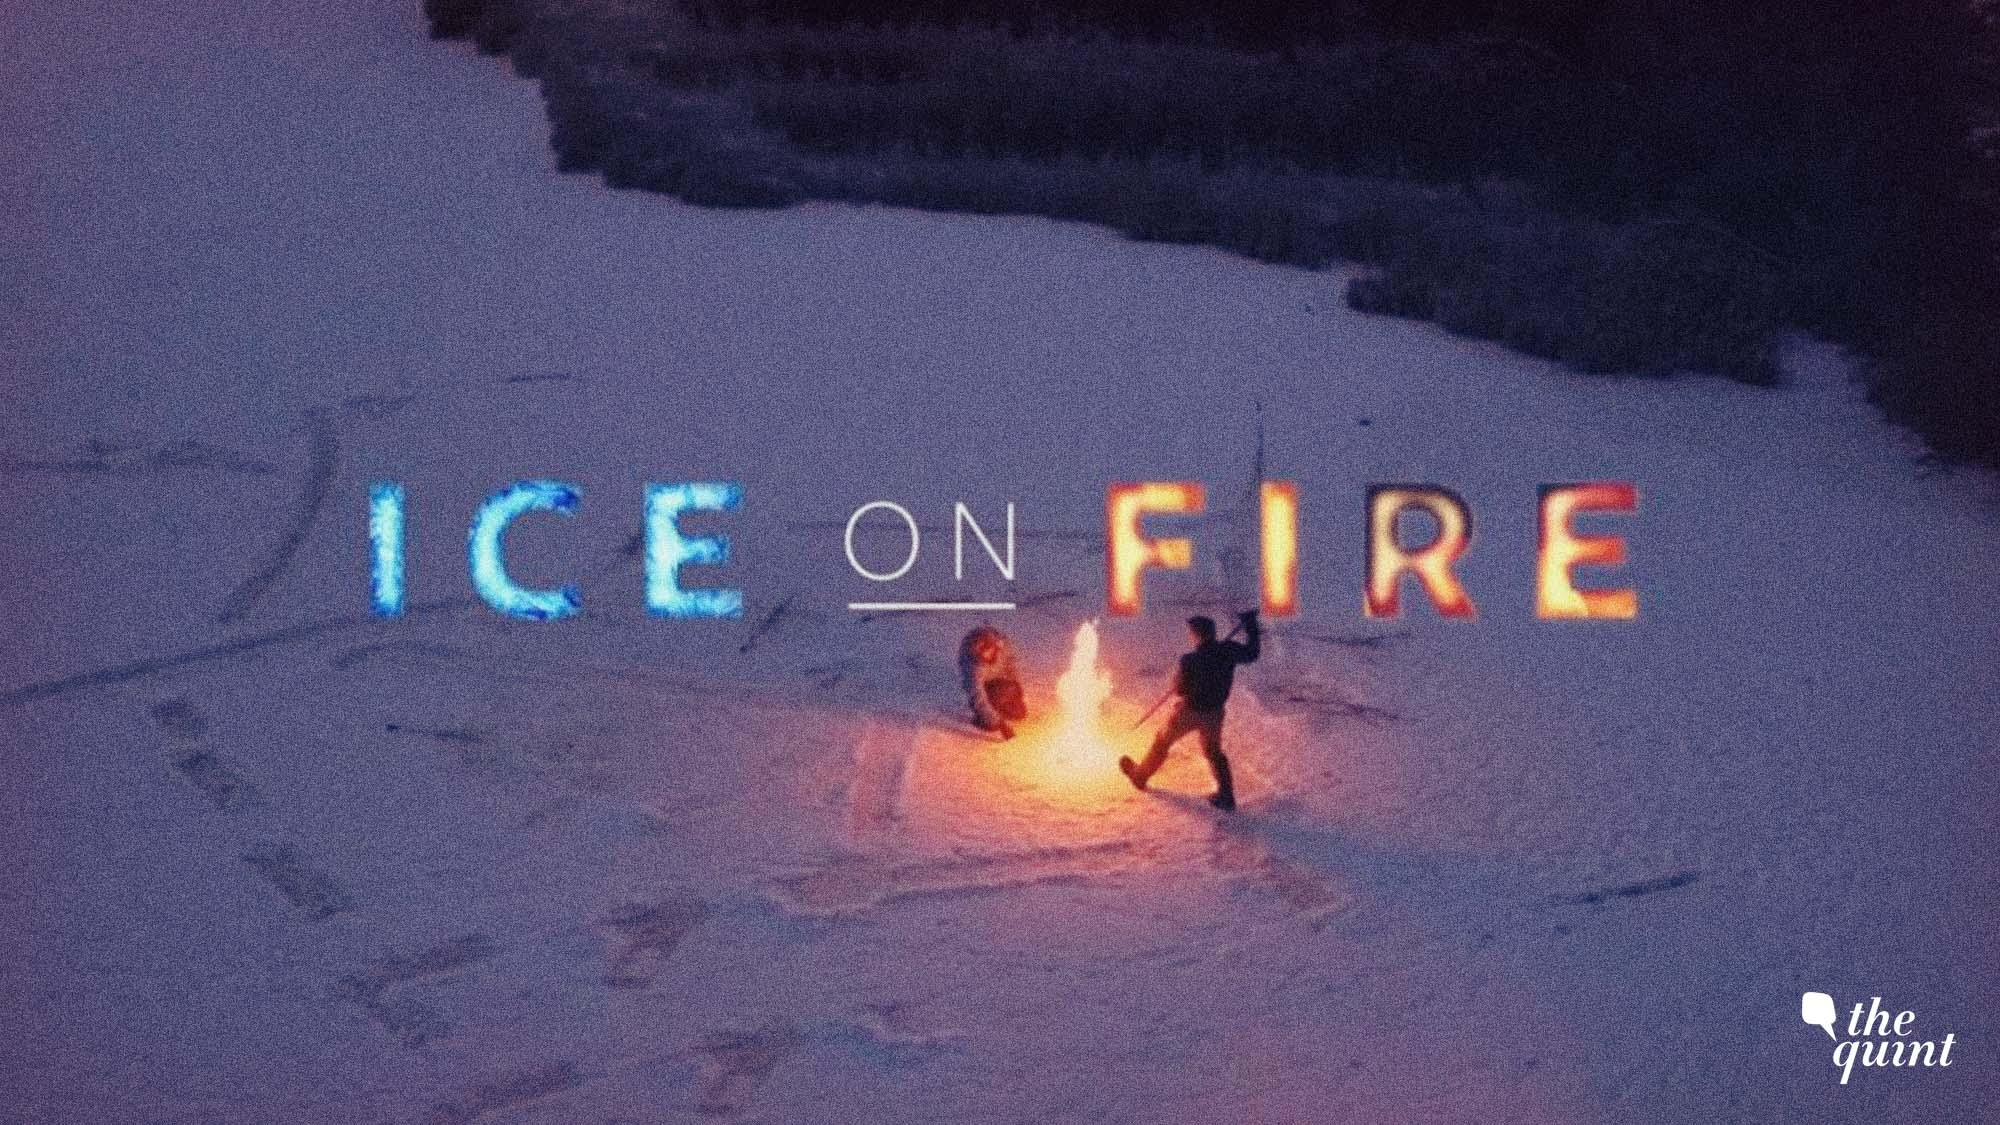 Review: Ice on Fire: An Ode to These Scientists Mitigating Climate Change